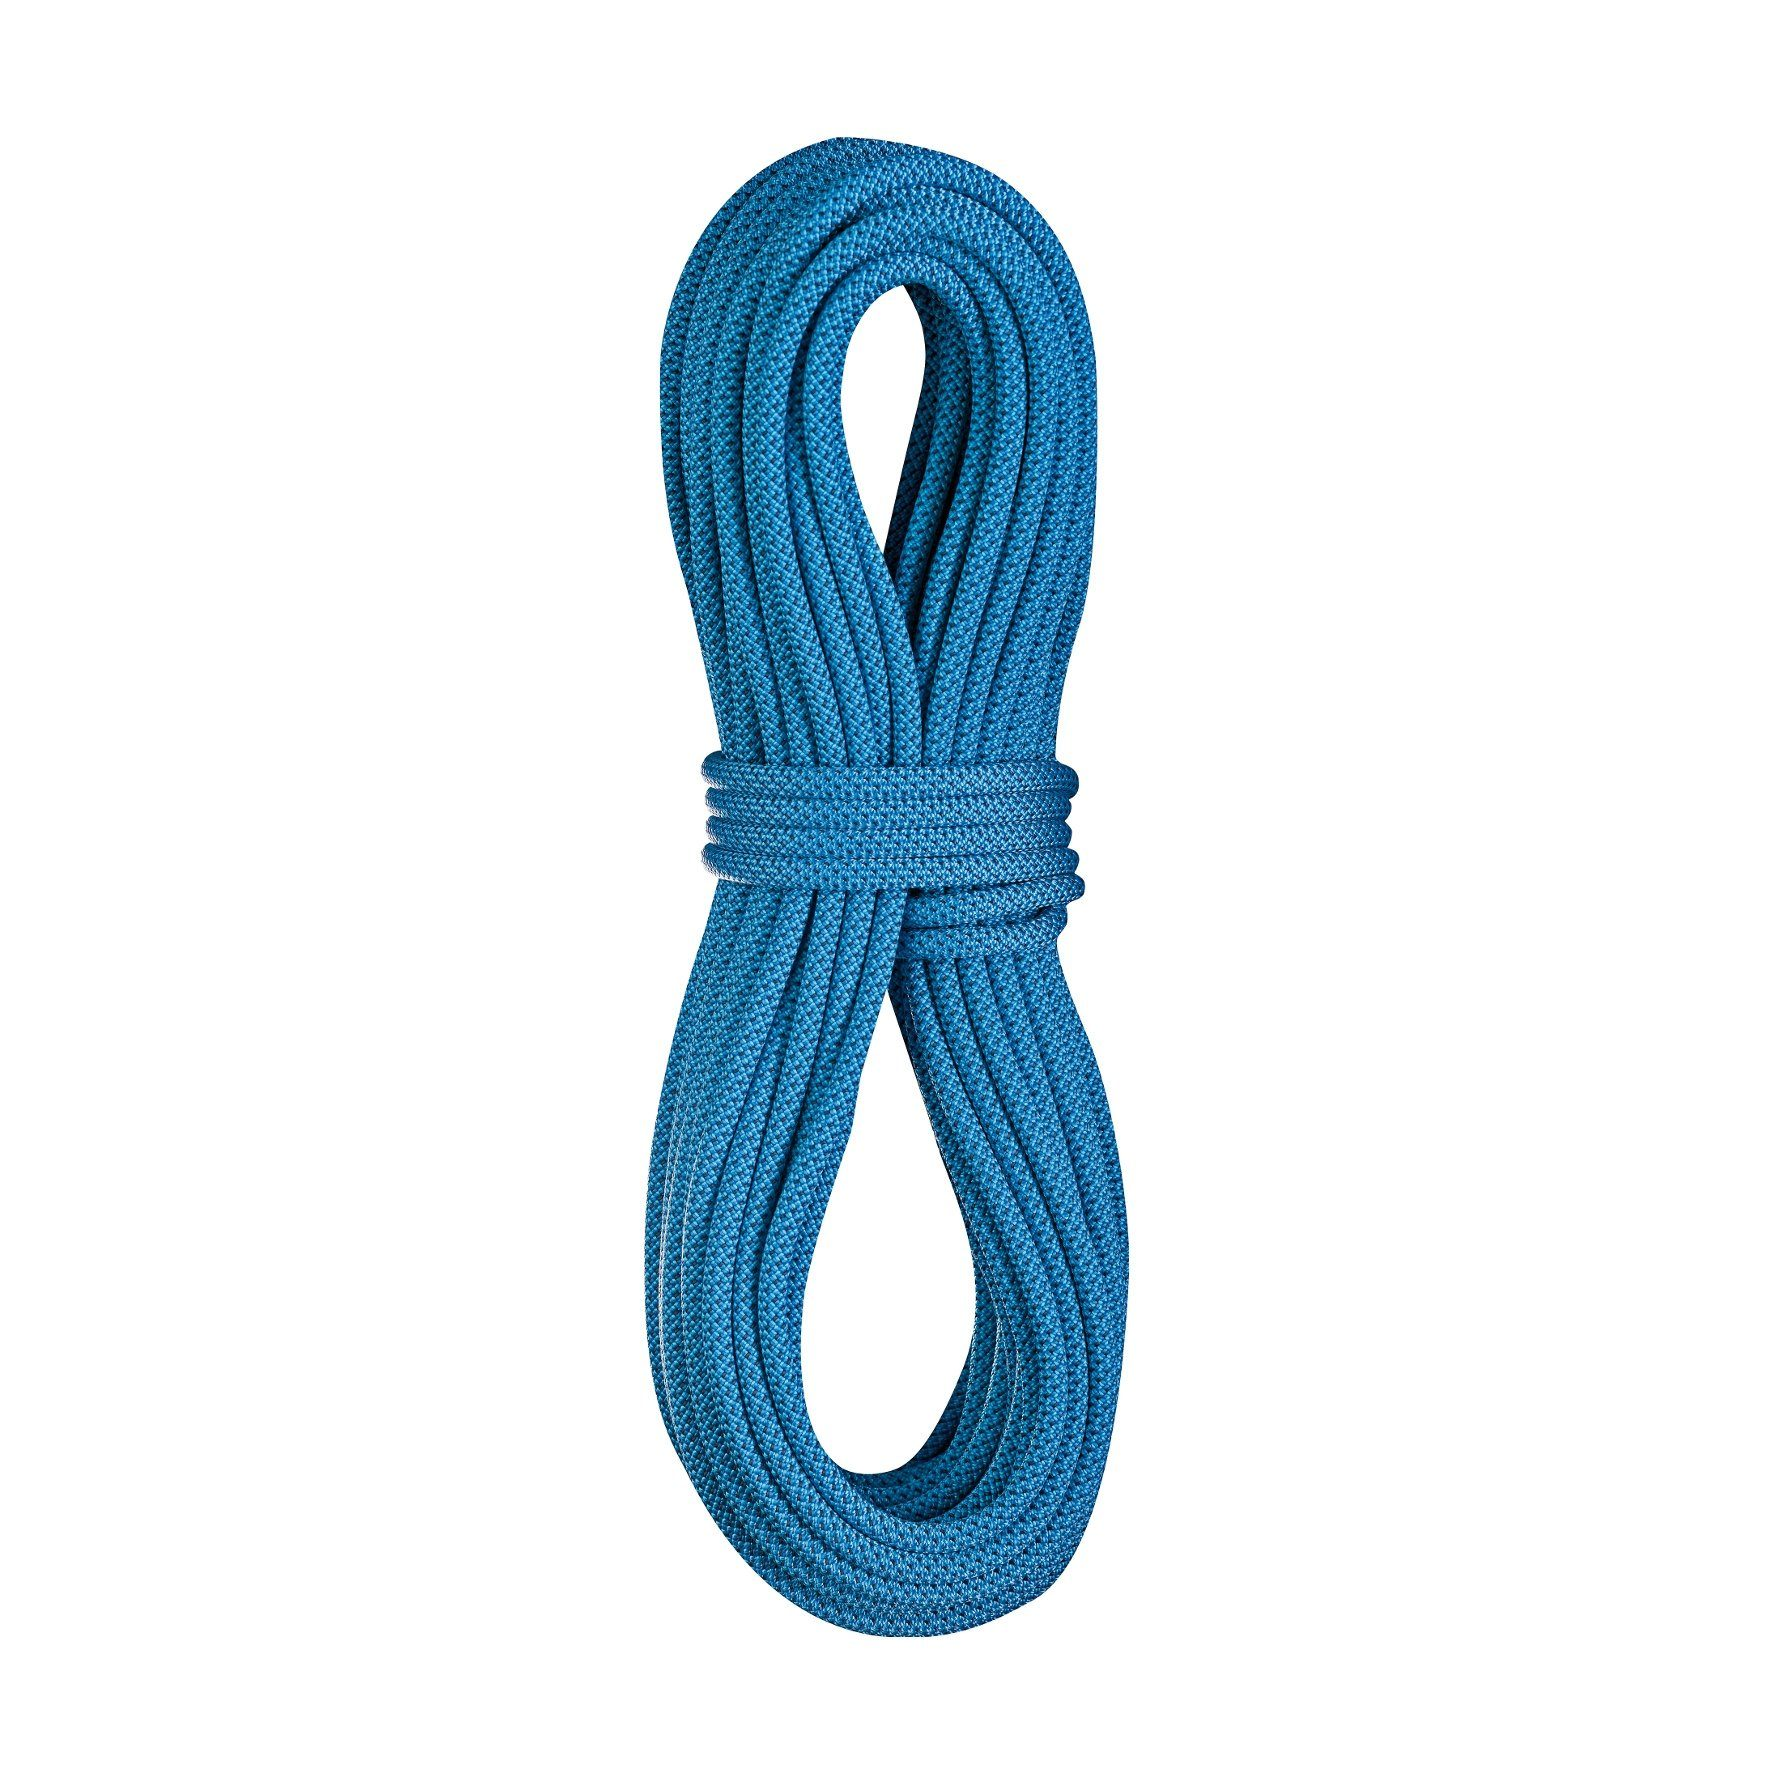 Edelrid Kletterseil »Tower Rope 10,5mm 50m«